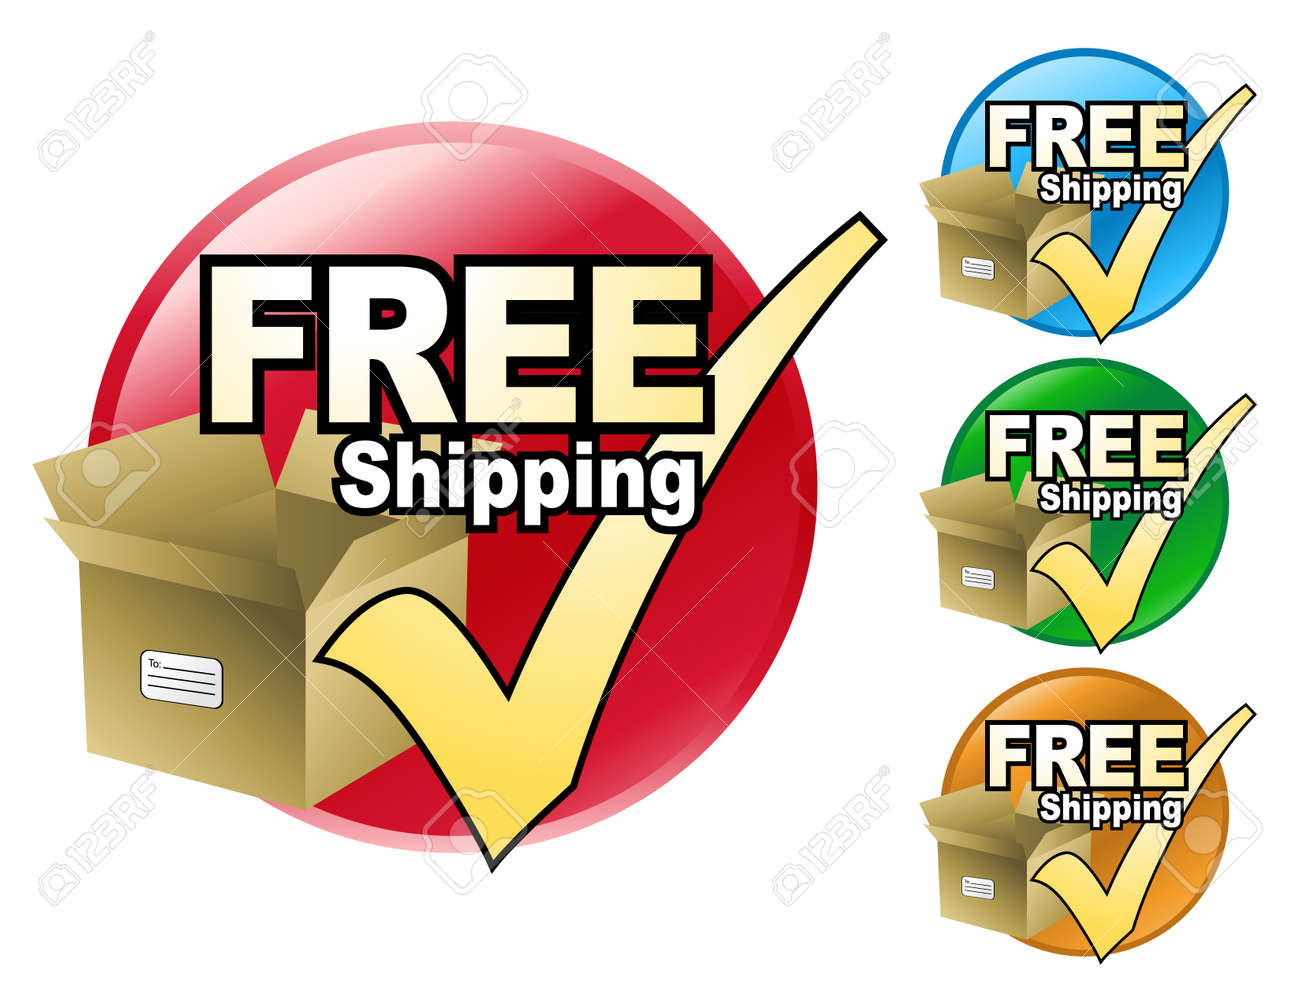 A free shipping icon in four different colors to choose from. The icon has a cardboard box with a check mark by it. Stock Vector - 4771613